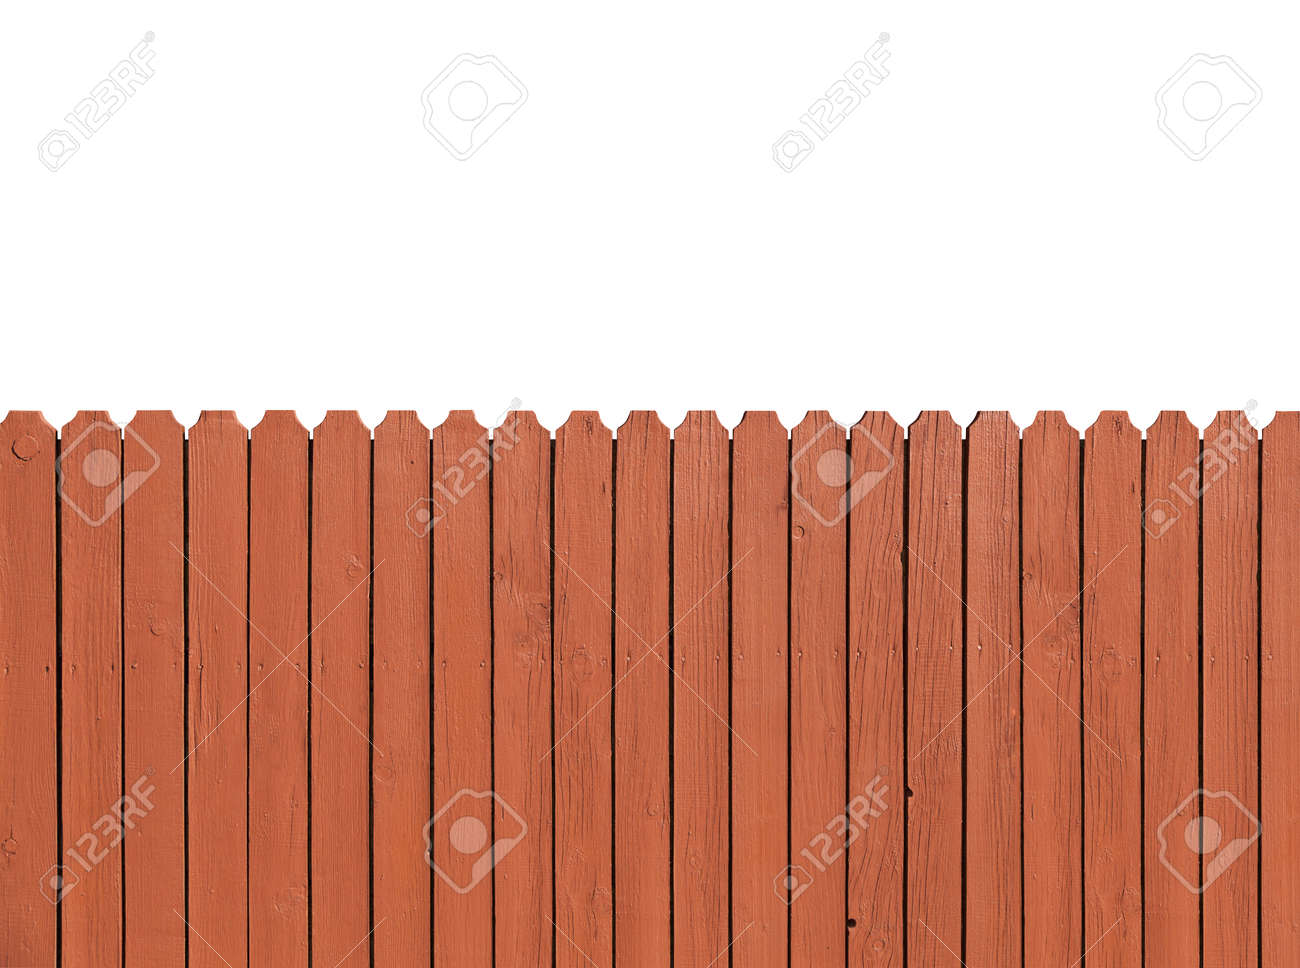 Fence wooden parallel bars, painted brown. Isolated on a white background. With clipping path. - 62373589